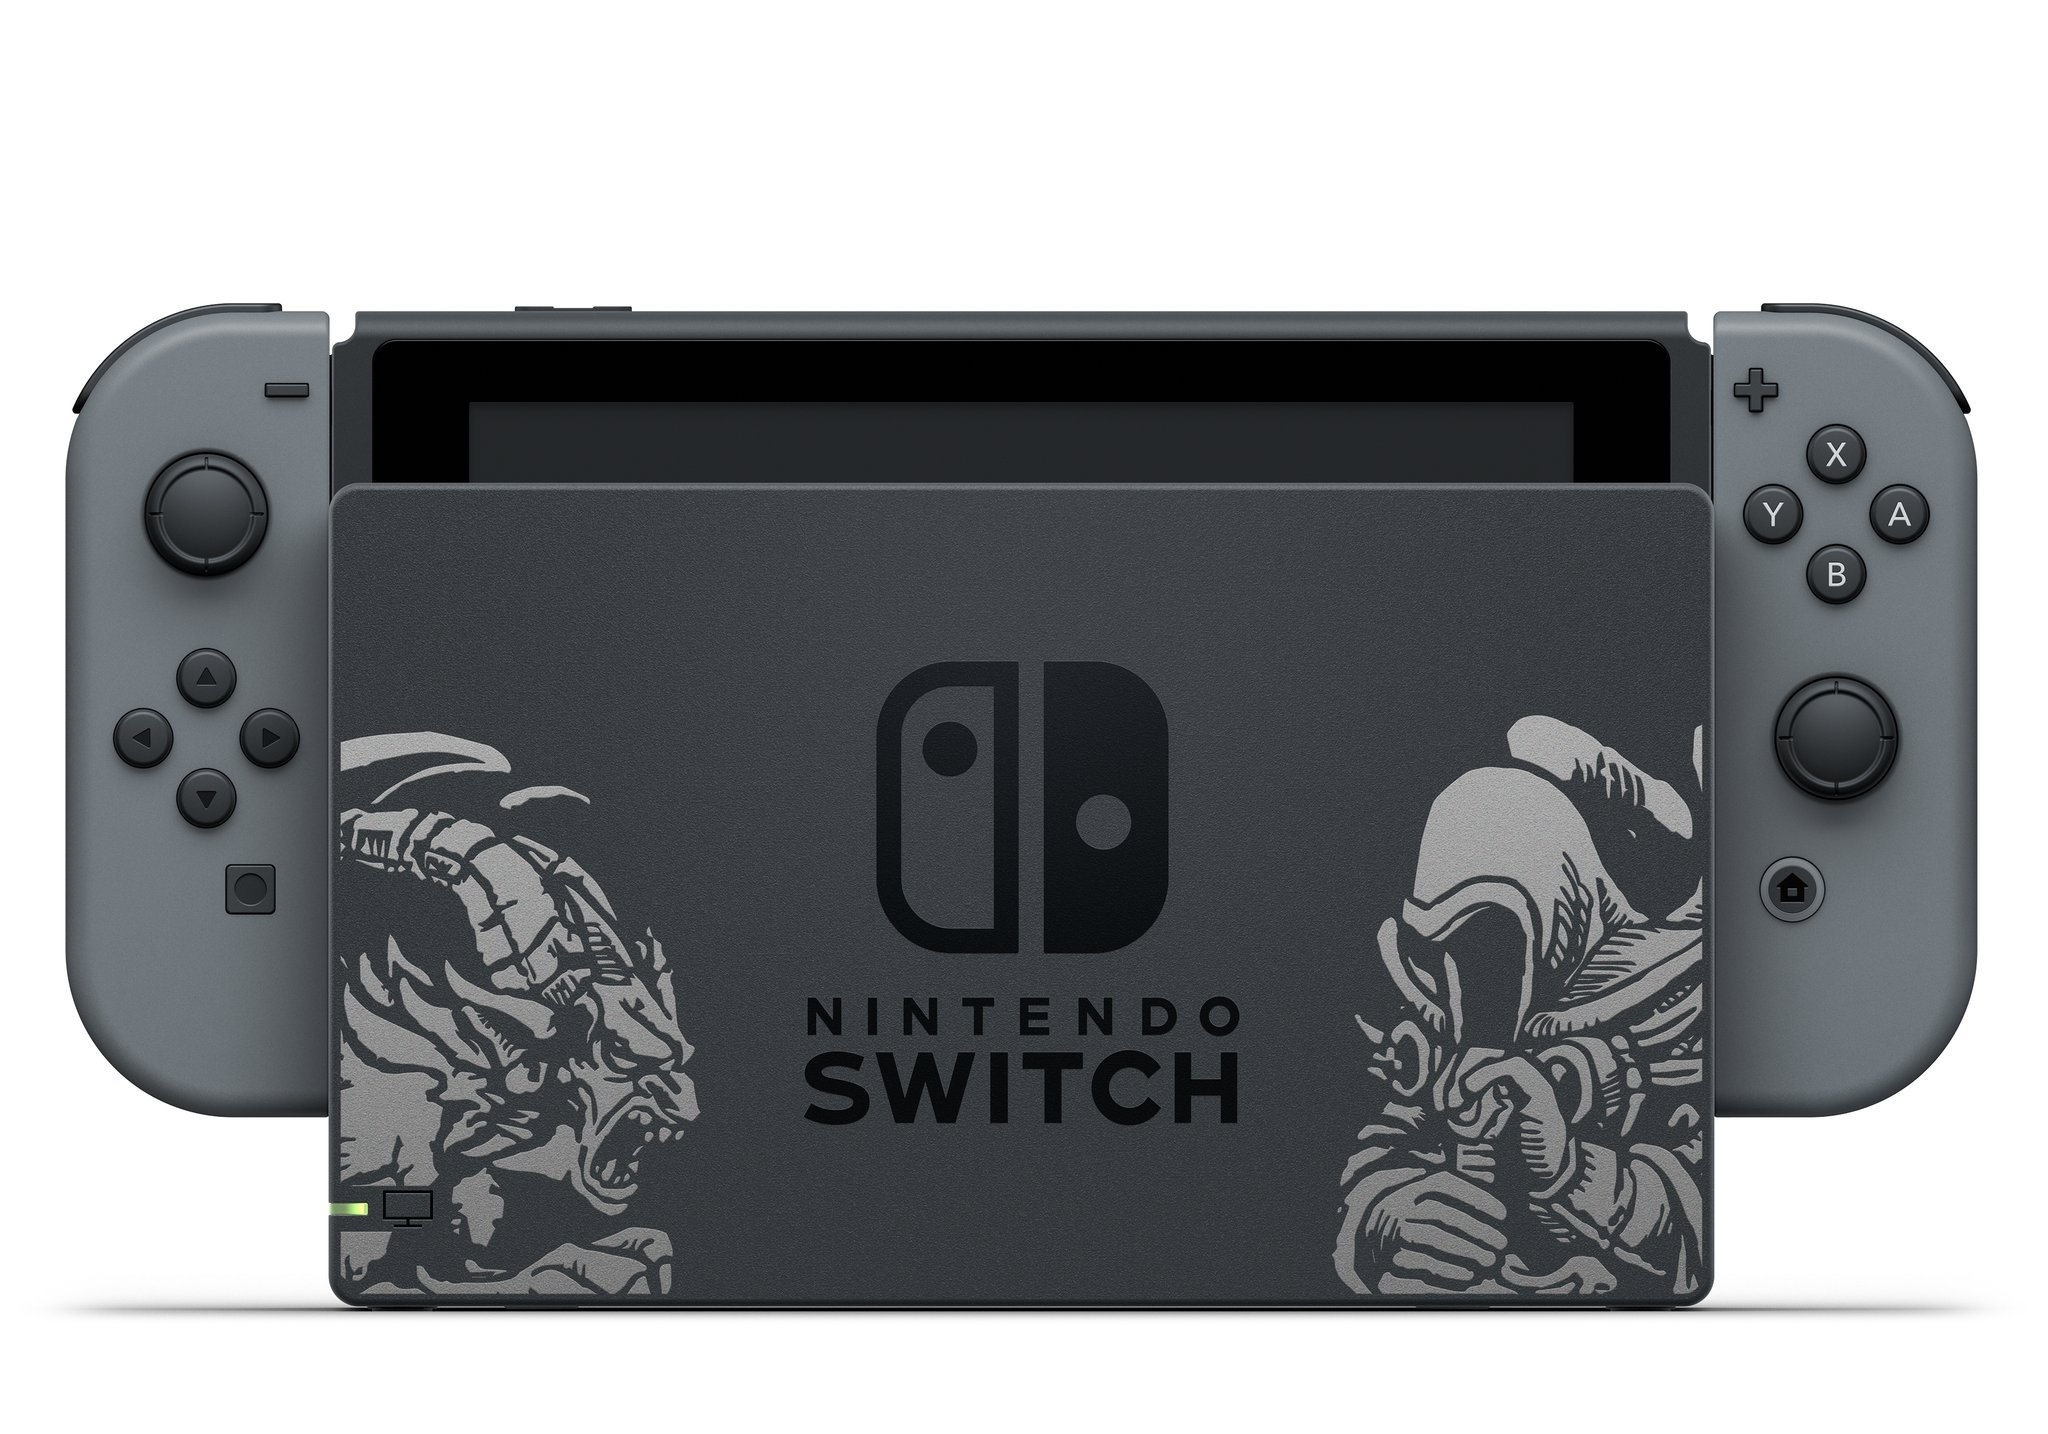 Diablo 3 Nintendo Switch Bundle Announced